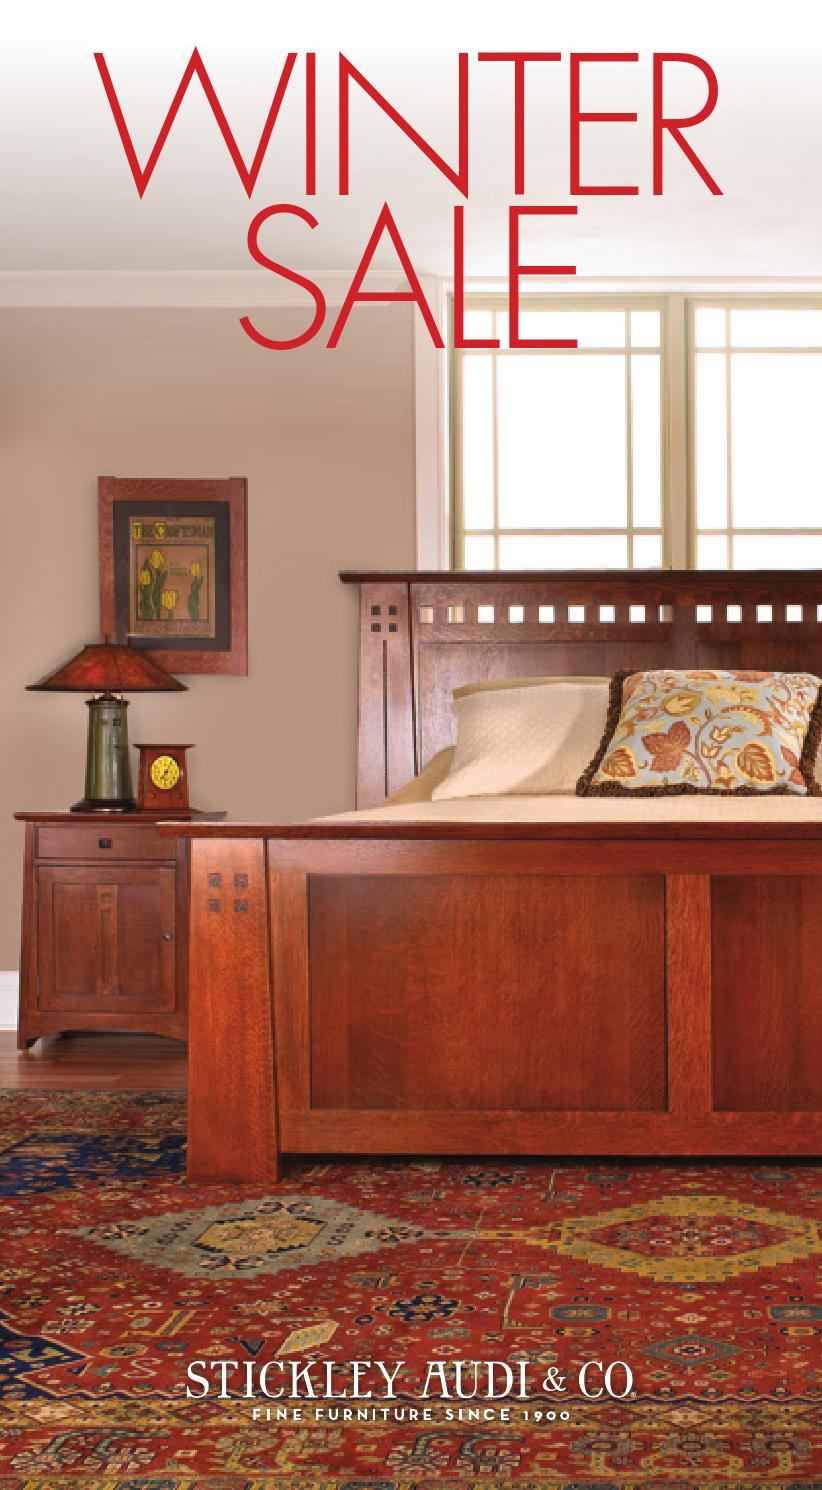 Stickley Audi Amp Co Winter Sale By Stickley Issuu